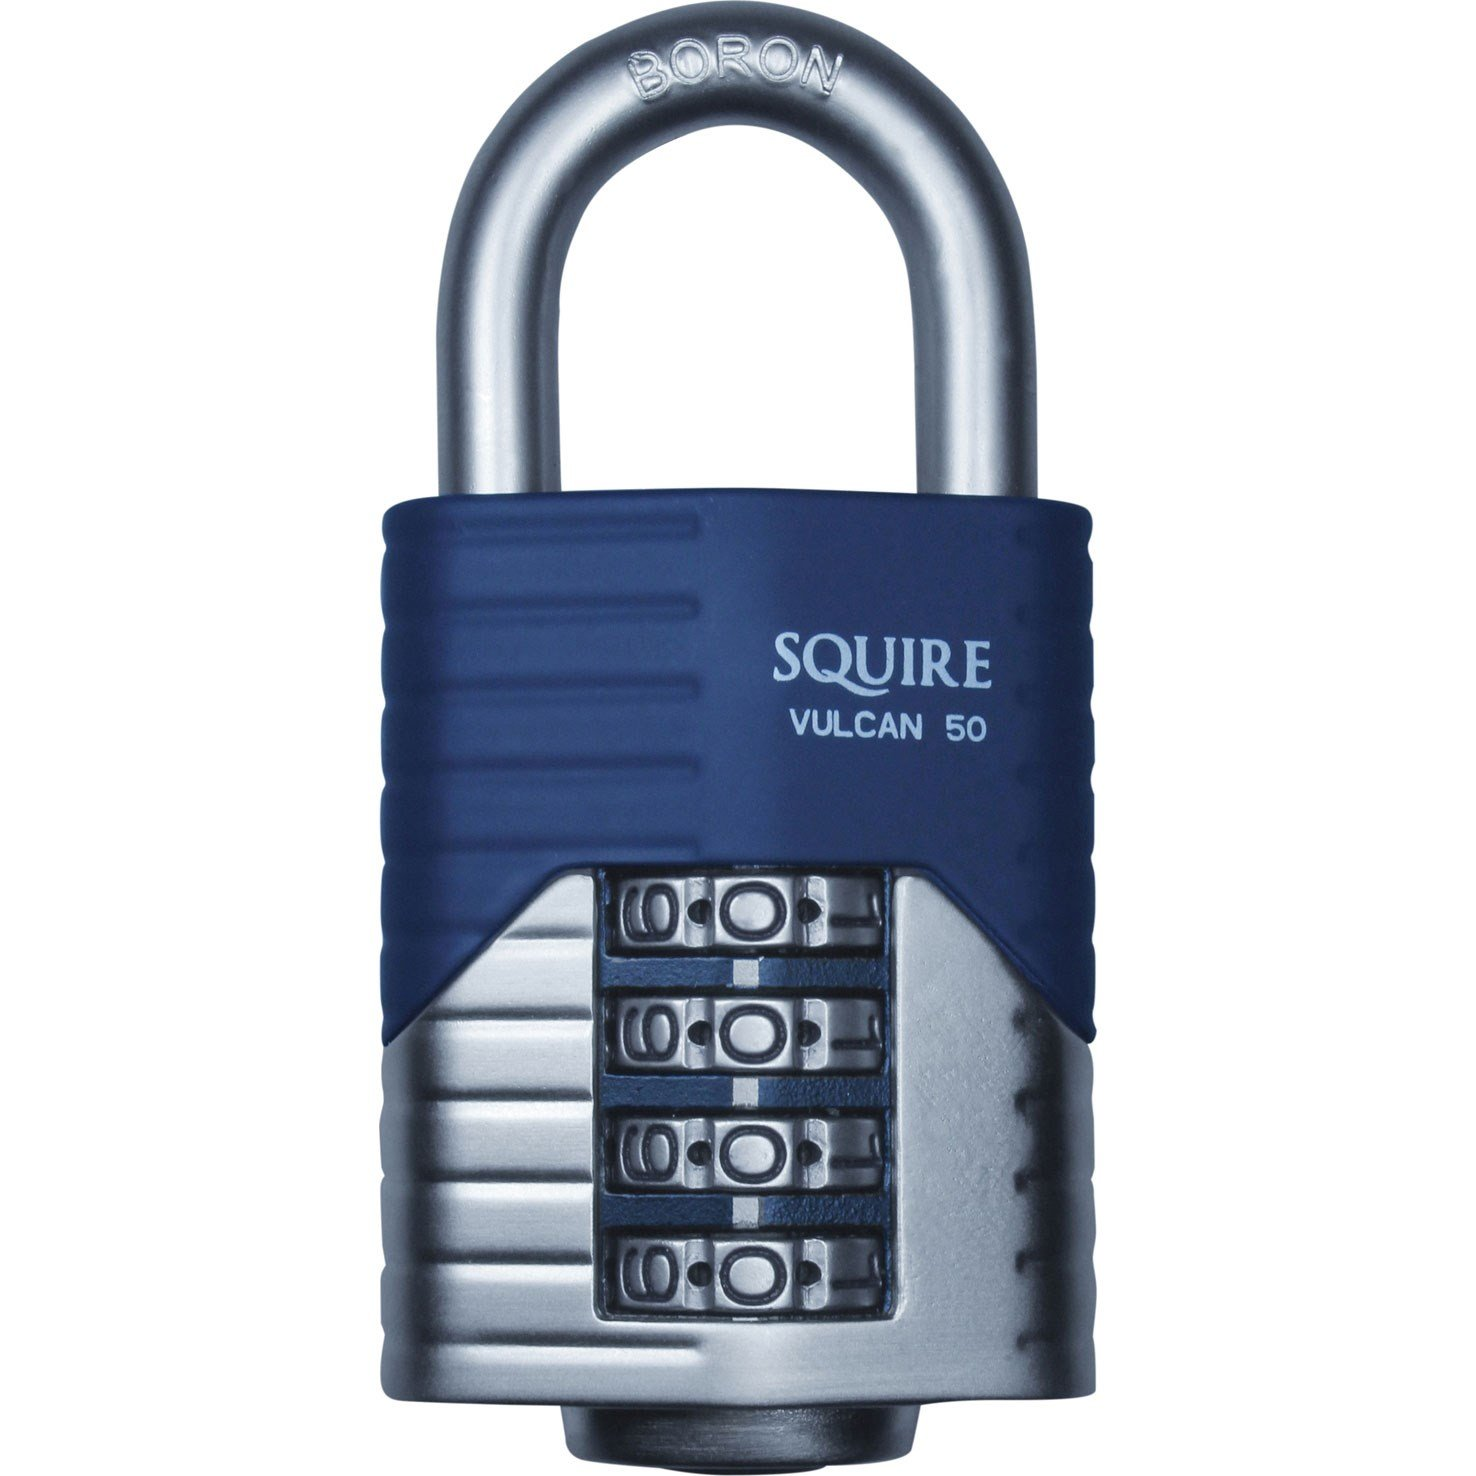 Henry Squire Vulcan 4 Wheel Open Shackle Combination Padlock, 50 mm Length Henry Squire & Sons Ltd. VULCAN COMBI 50